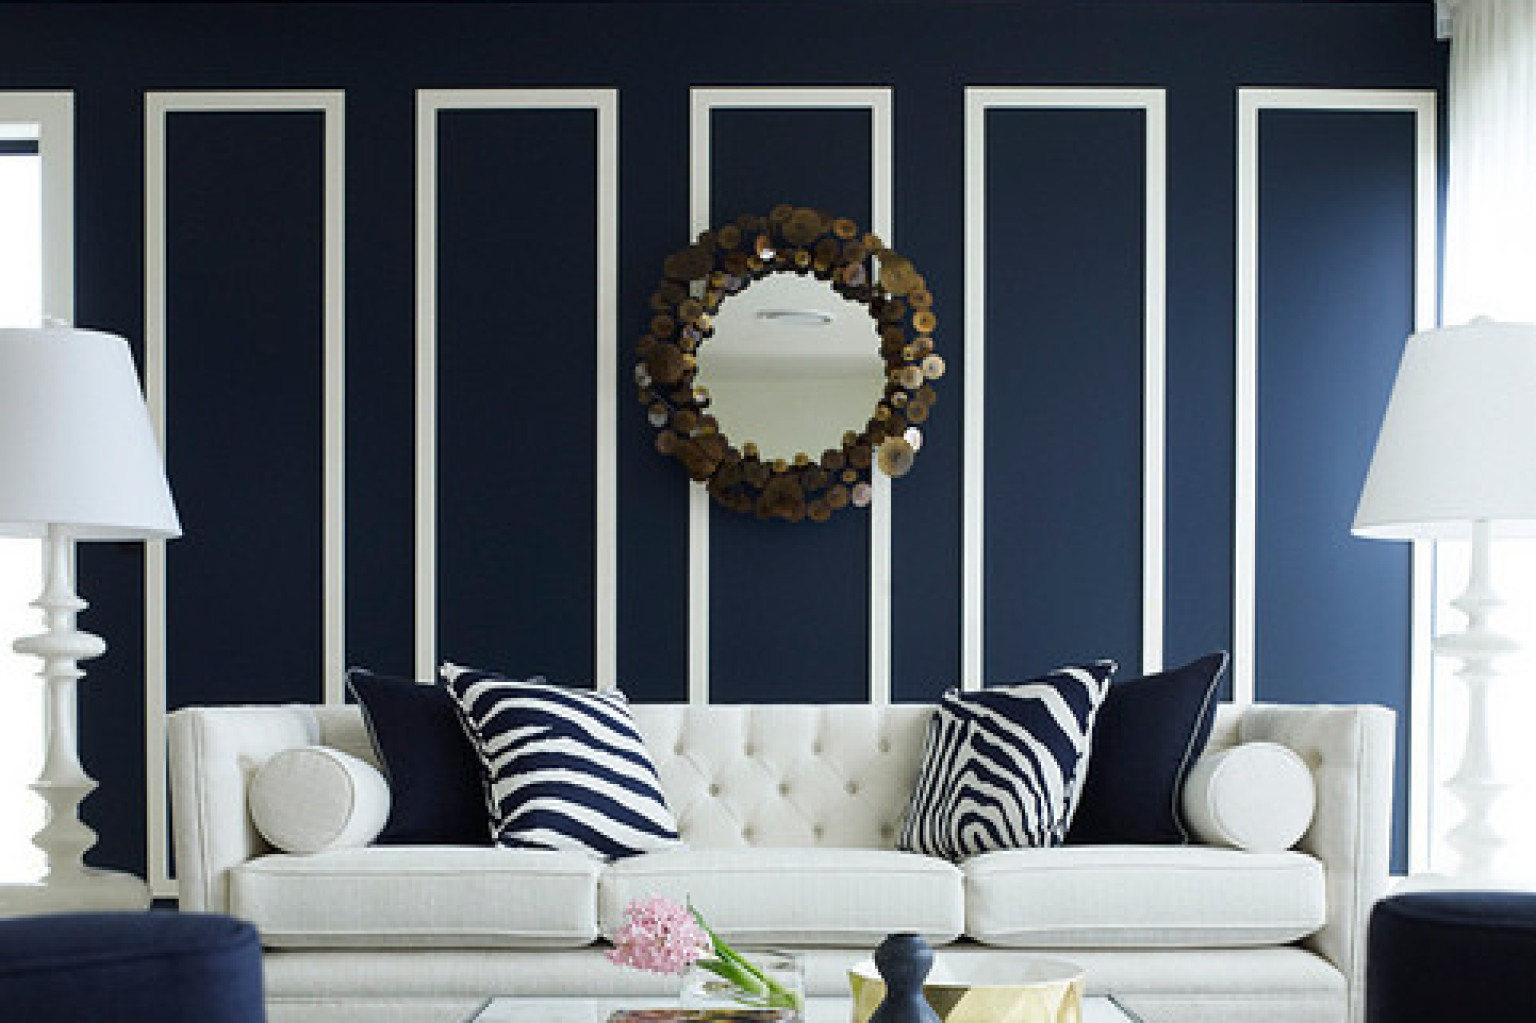 Charmant 10 Navy Rooms To Inspire You To Pick Up The Paintbrush (PHOTOS) | HuffPost